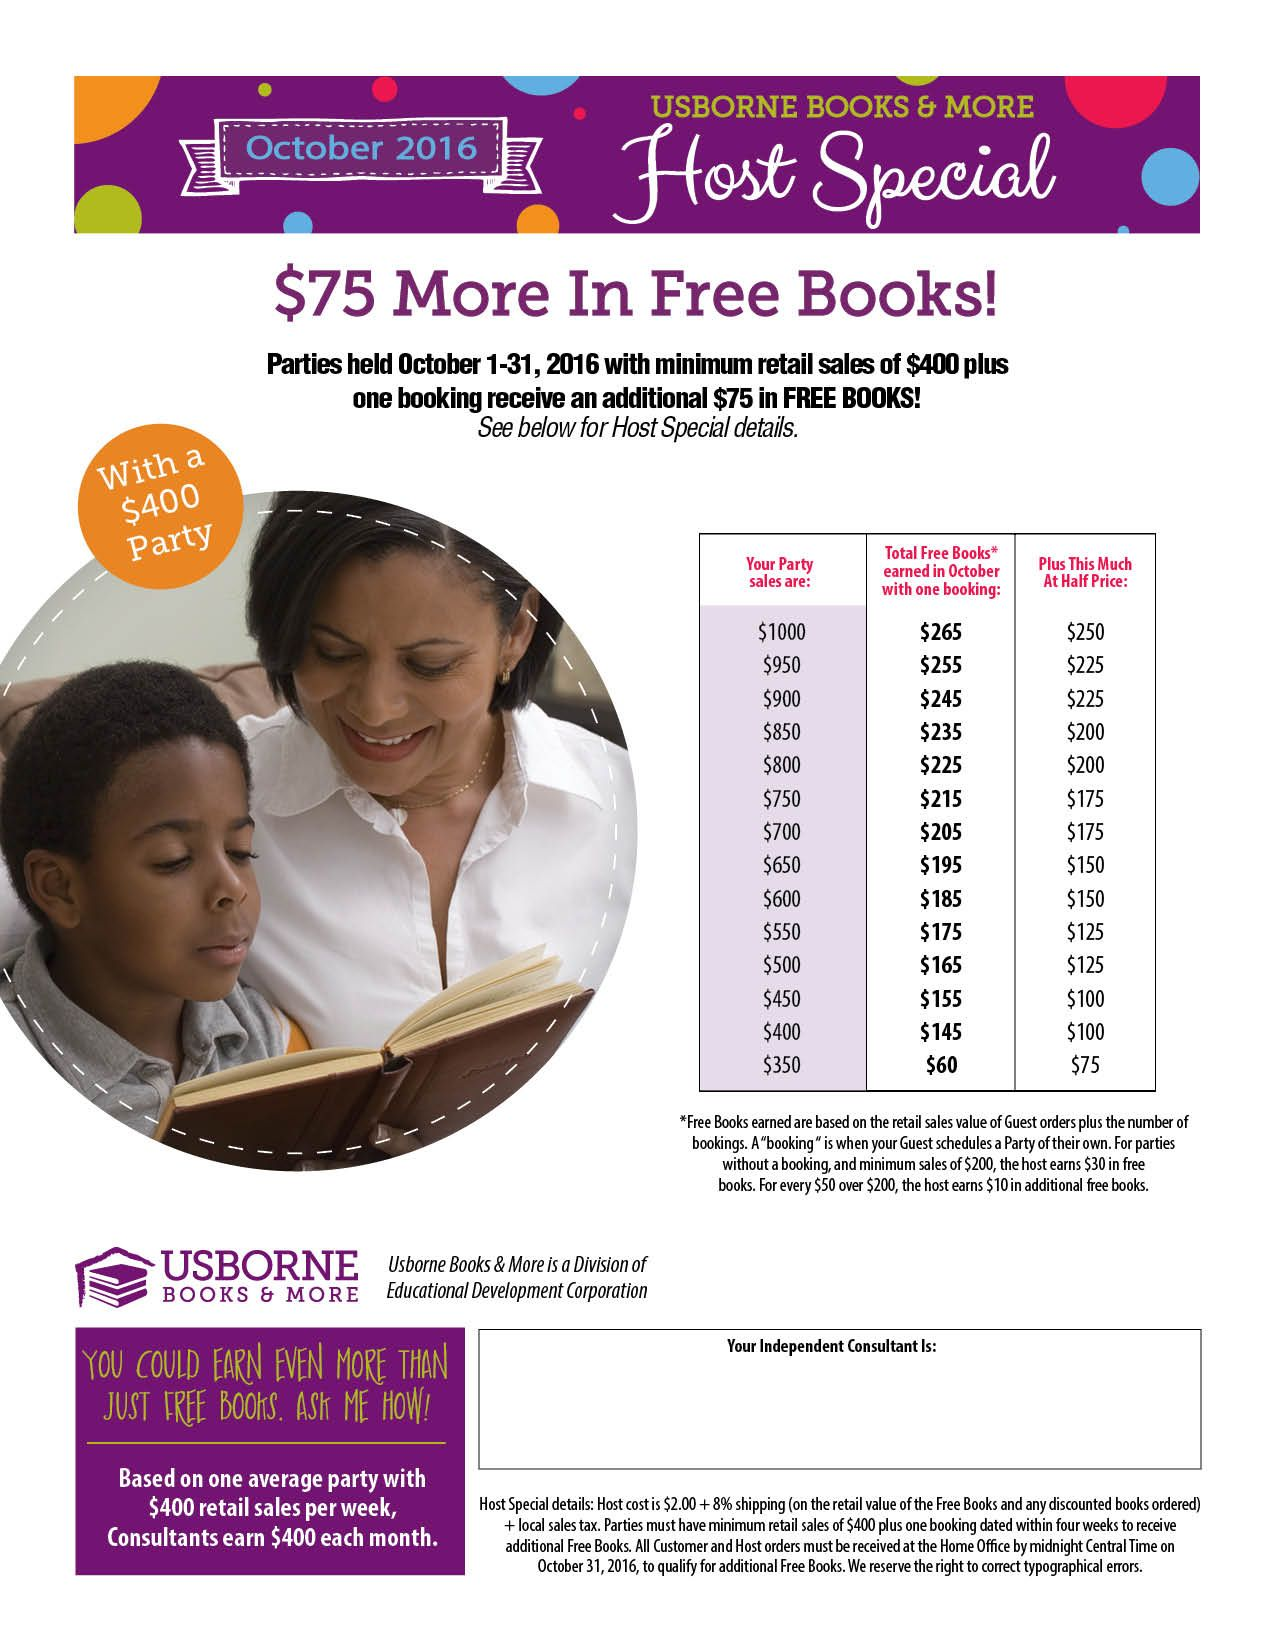 October look in free books if sales reach